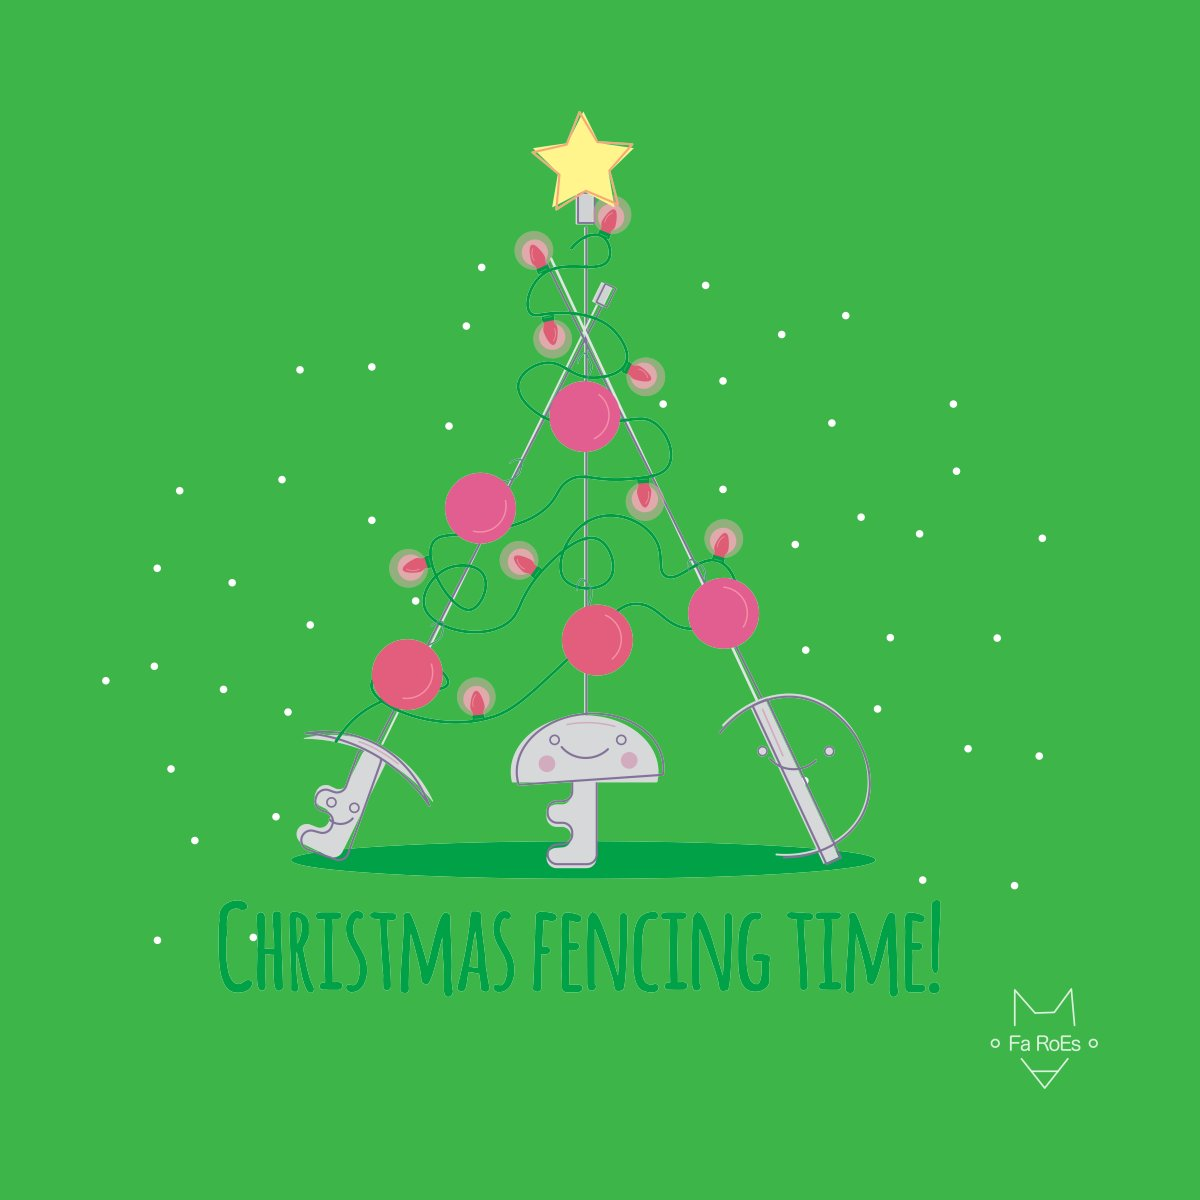 Merry Christmas to all our followers. We hope you have a great day. #fencing #fencingclub #foil #epee #sabre #nottingham #notts #eastmidlandspic.twitter.com/DrZbmCl4Ke